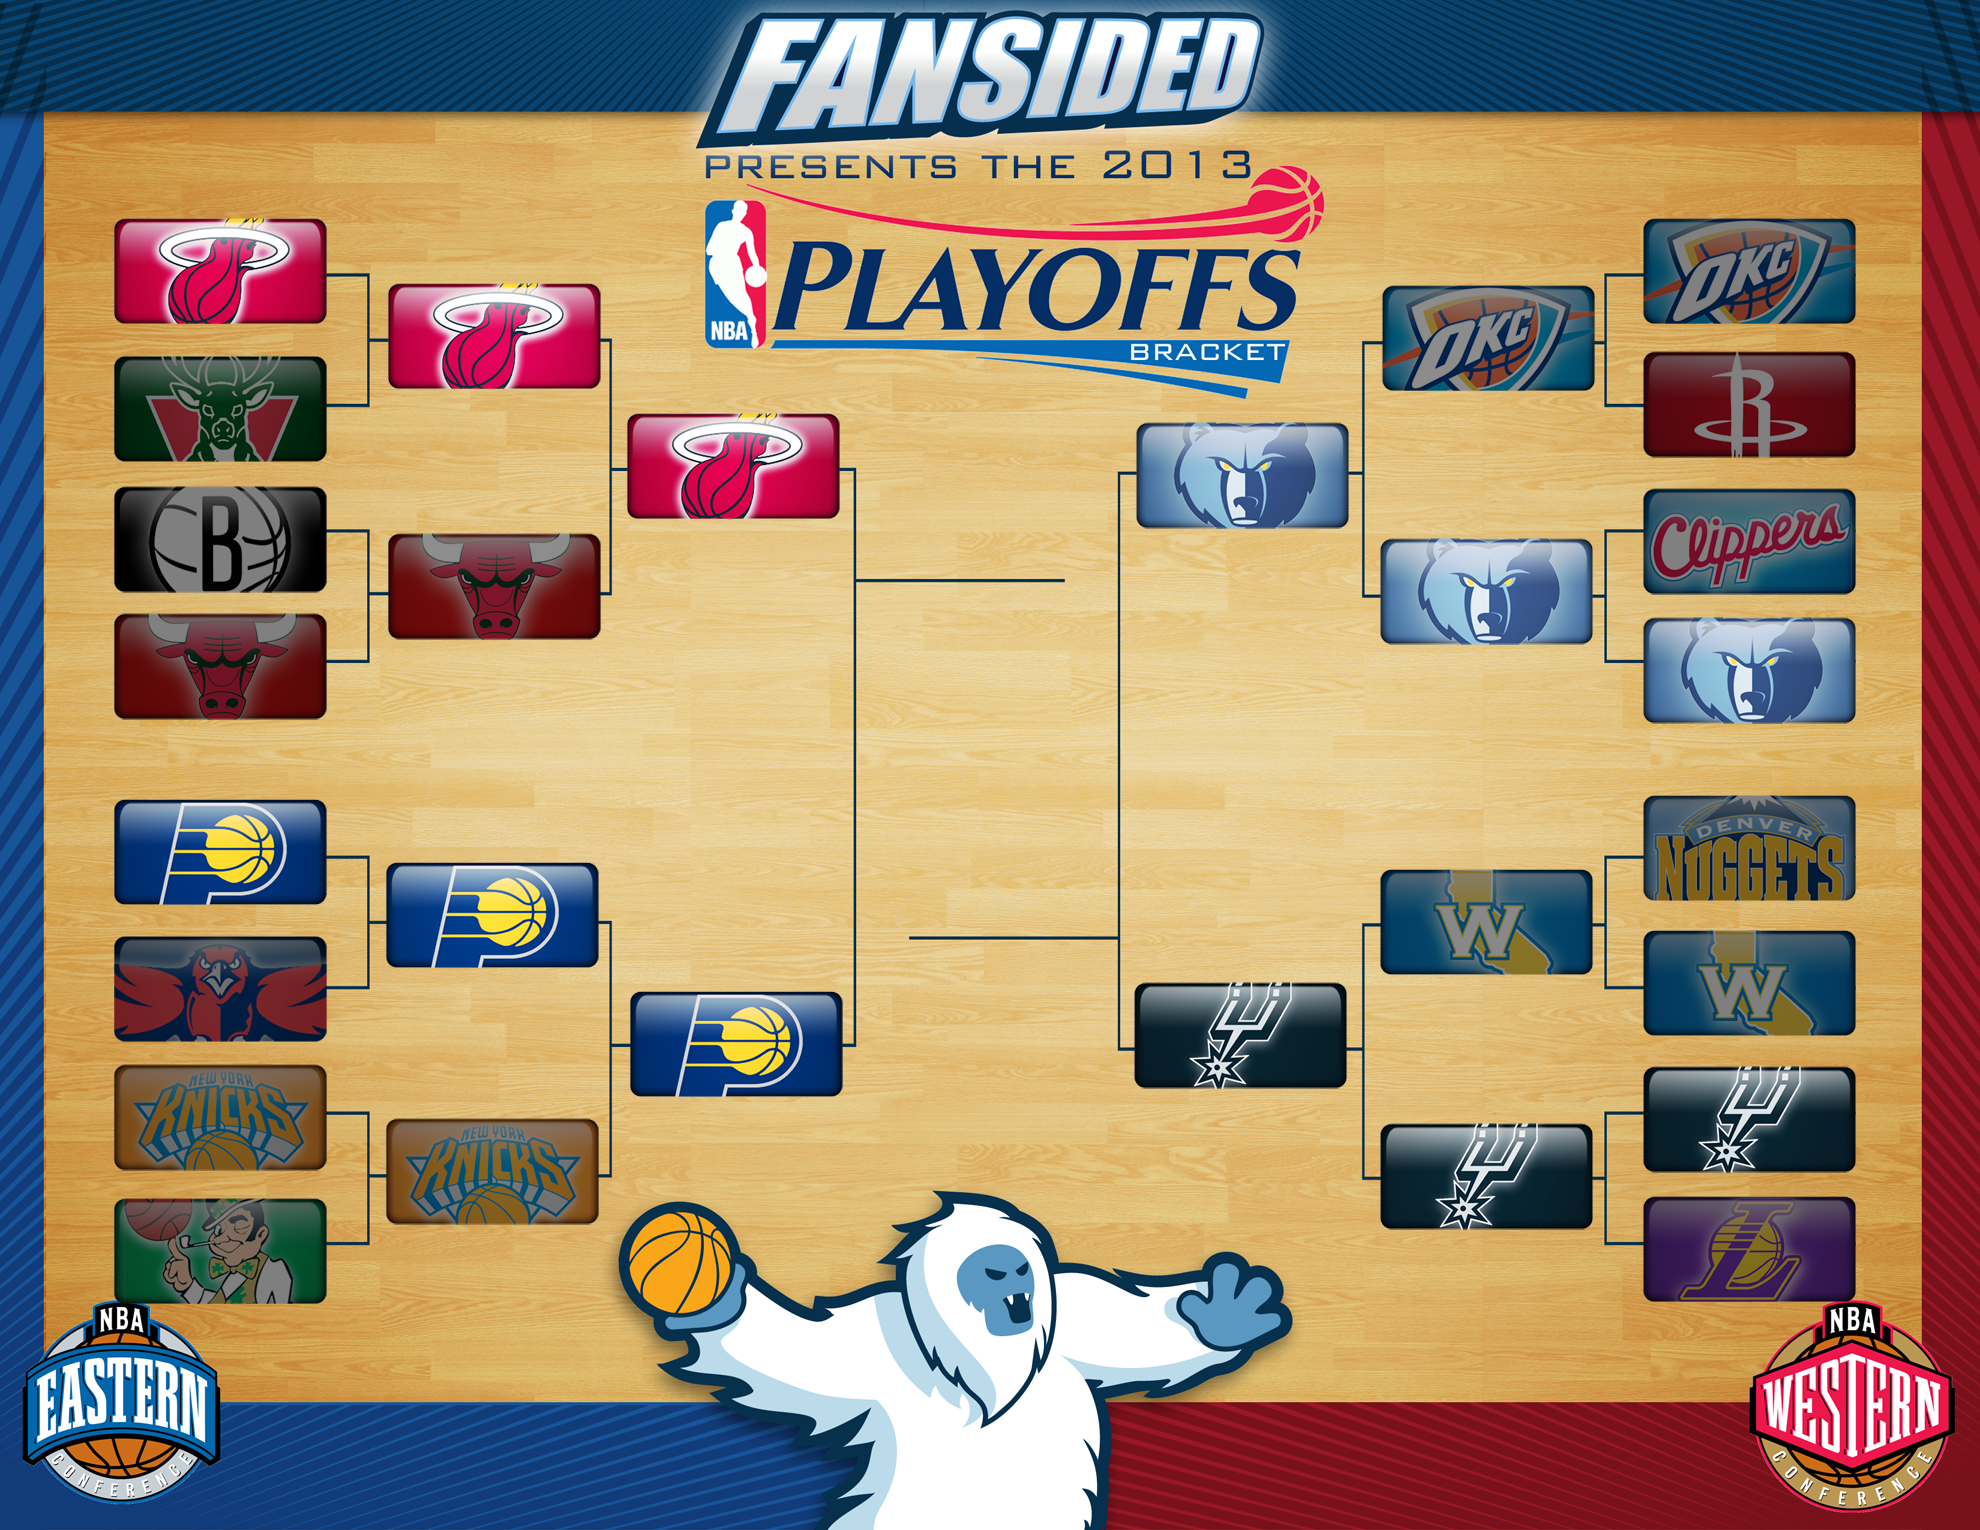 NBA Playoffs Bracket 2013: Eastern and Western Conference Finals Set